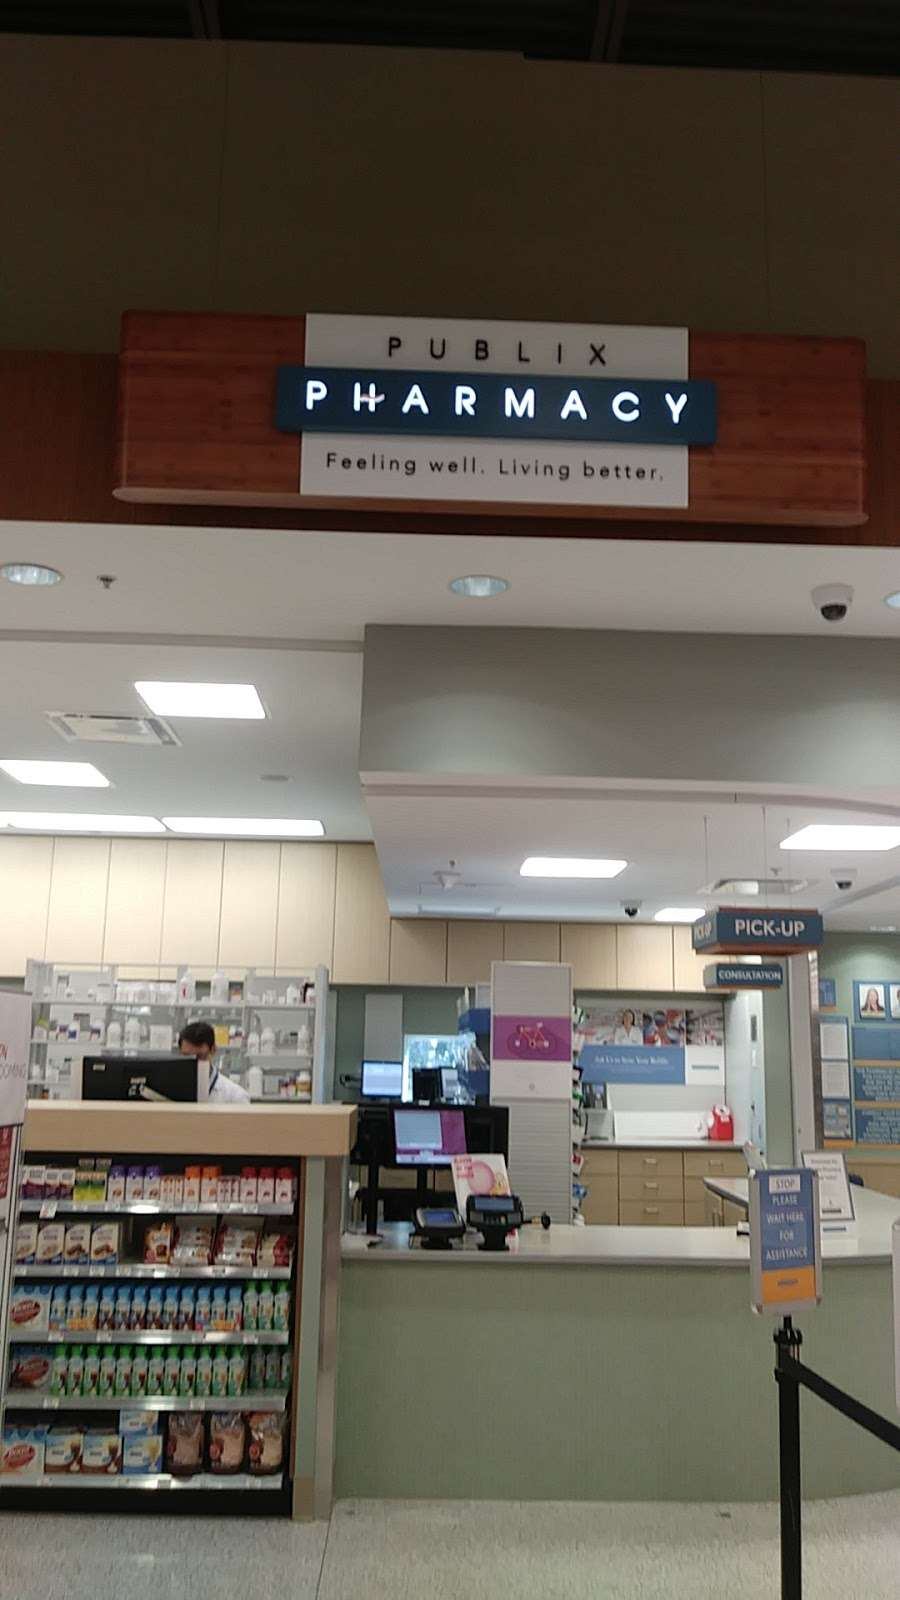 Publix Pharmacy at Shoppes At Sterling Creek - pharmacy  | Photo 1 of 3 | Address: 443 County Rd 419 Ste 1001, Oviedo, FL 32766, USA | Phone: (407) 603-4112